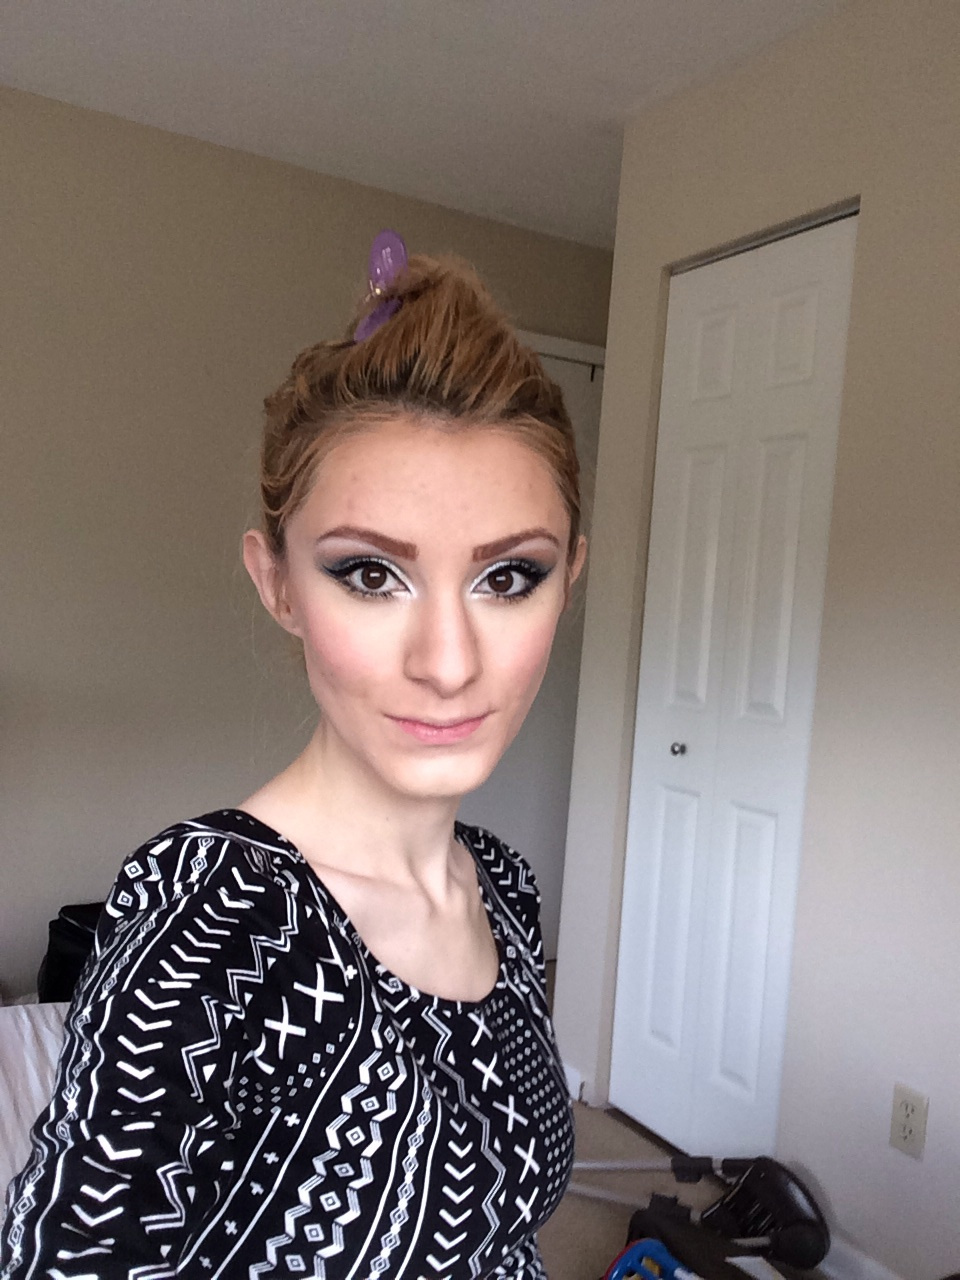 This picture is my makeup (still in process) WITH highlighting.